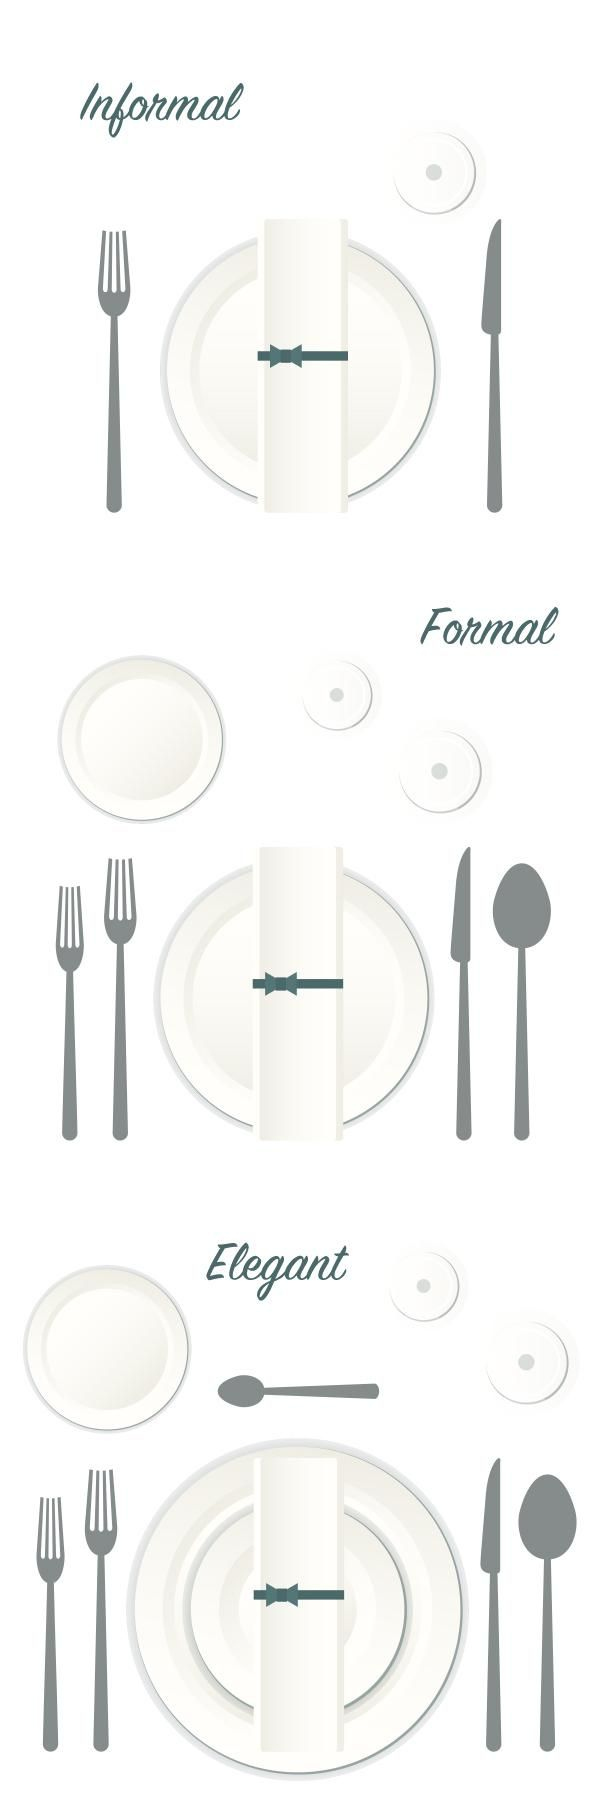 small resolution of learn how to set the dinner table for every occasion kirkland s elegant table setting diagram